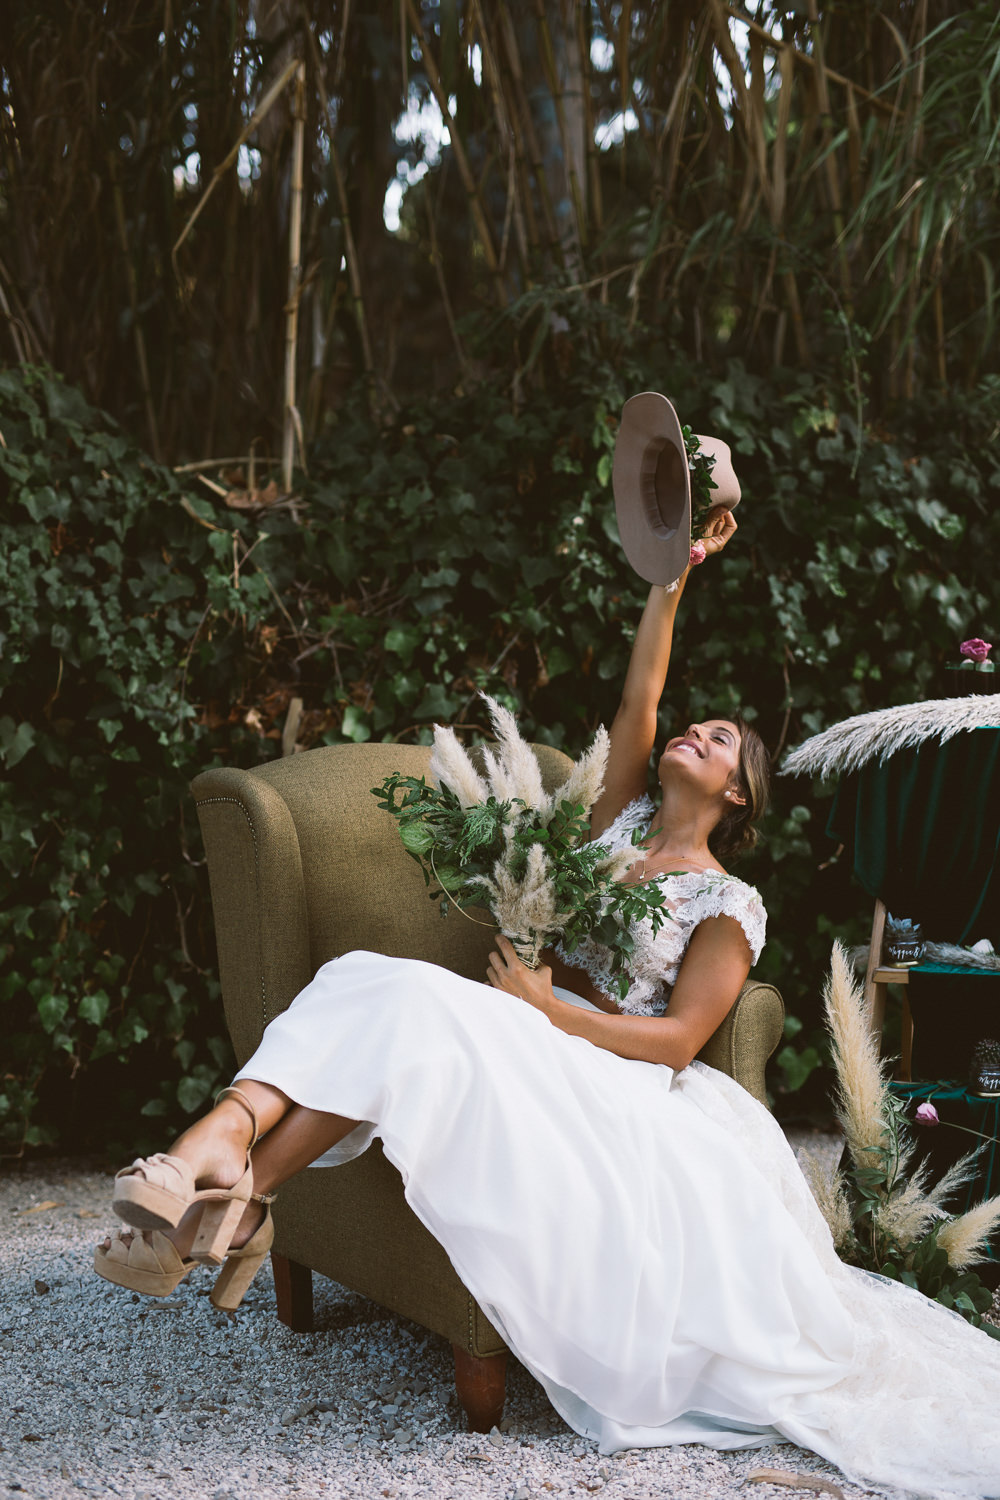 Bride Bridal Fedora Hat Accessory Greenery Foliage Floral Flowers Botanical Dark Green Velvet Pampas Grass Wedding Ideas Bárbara Araújo Photography